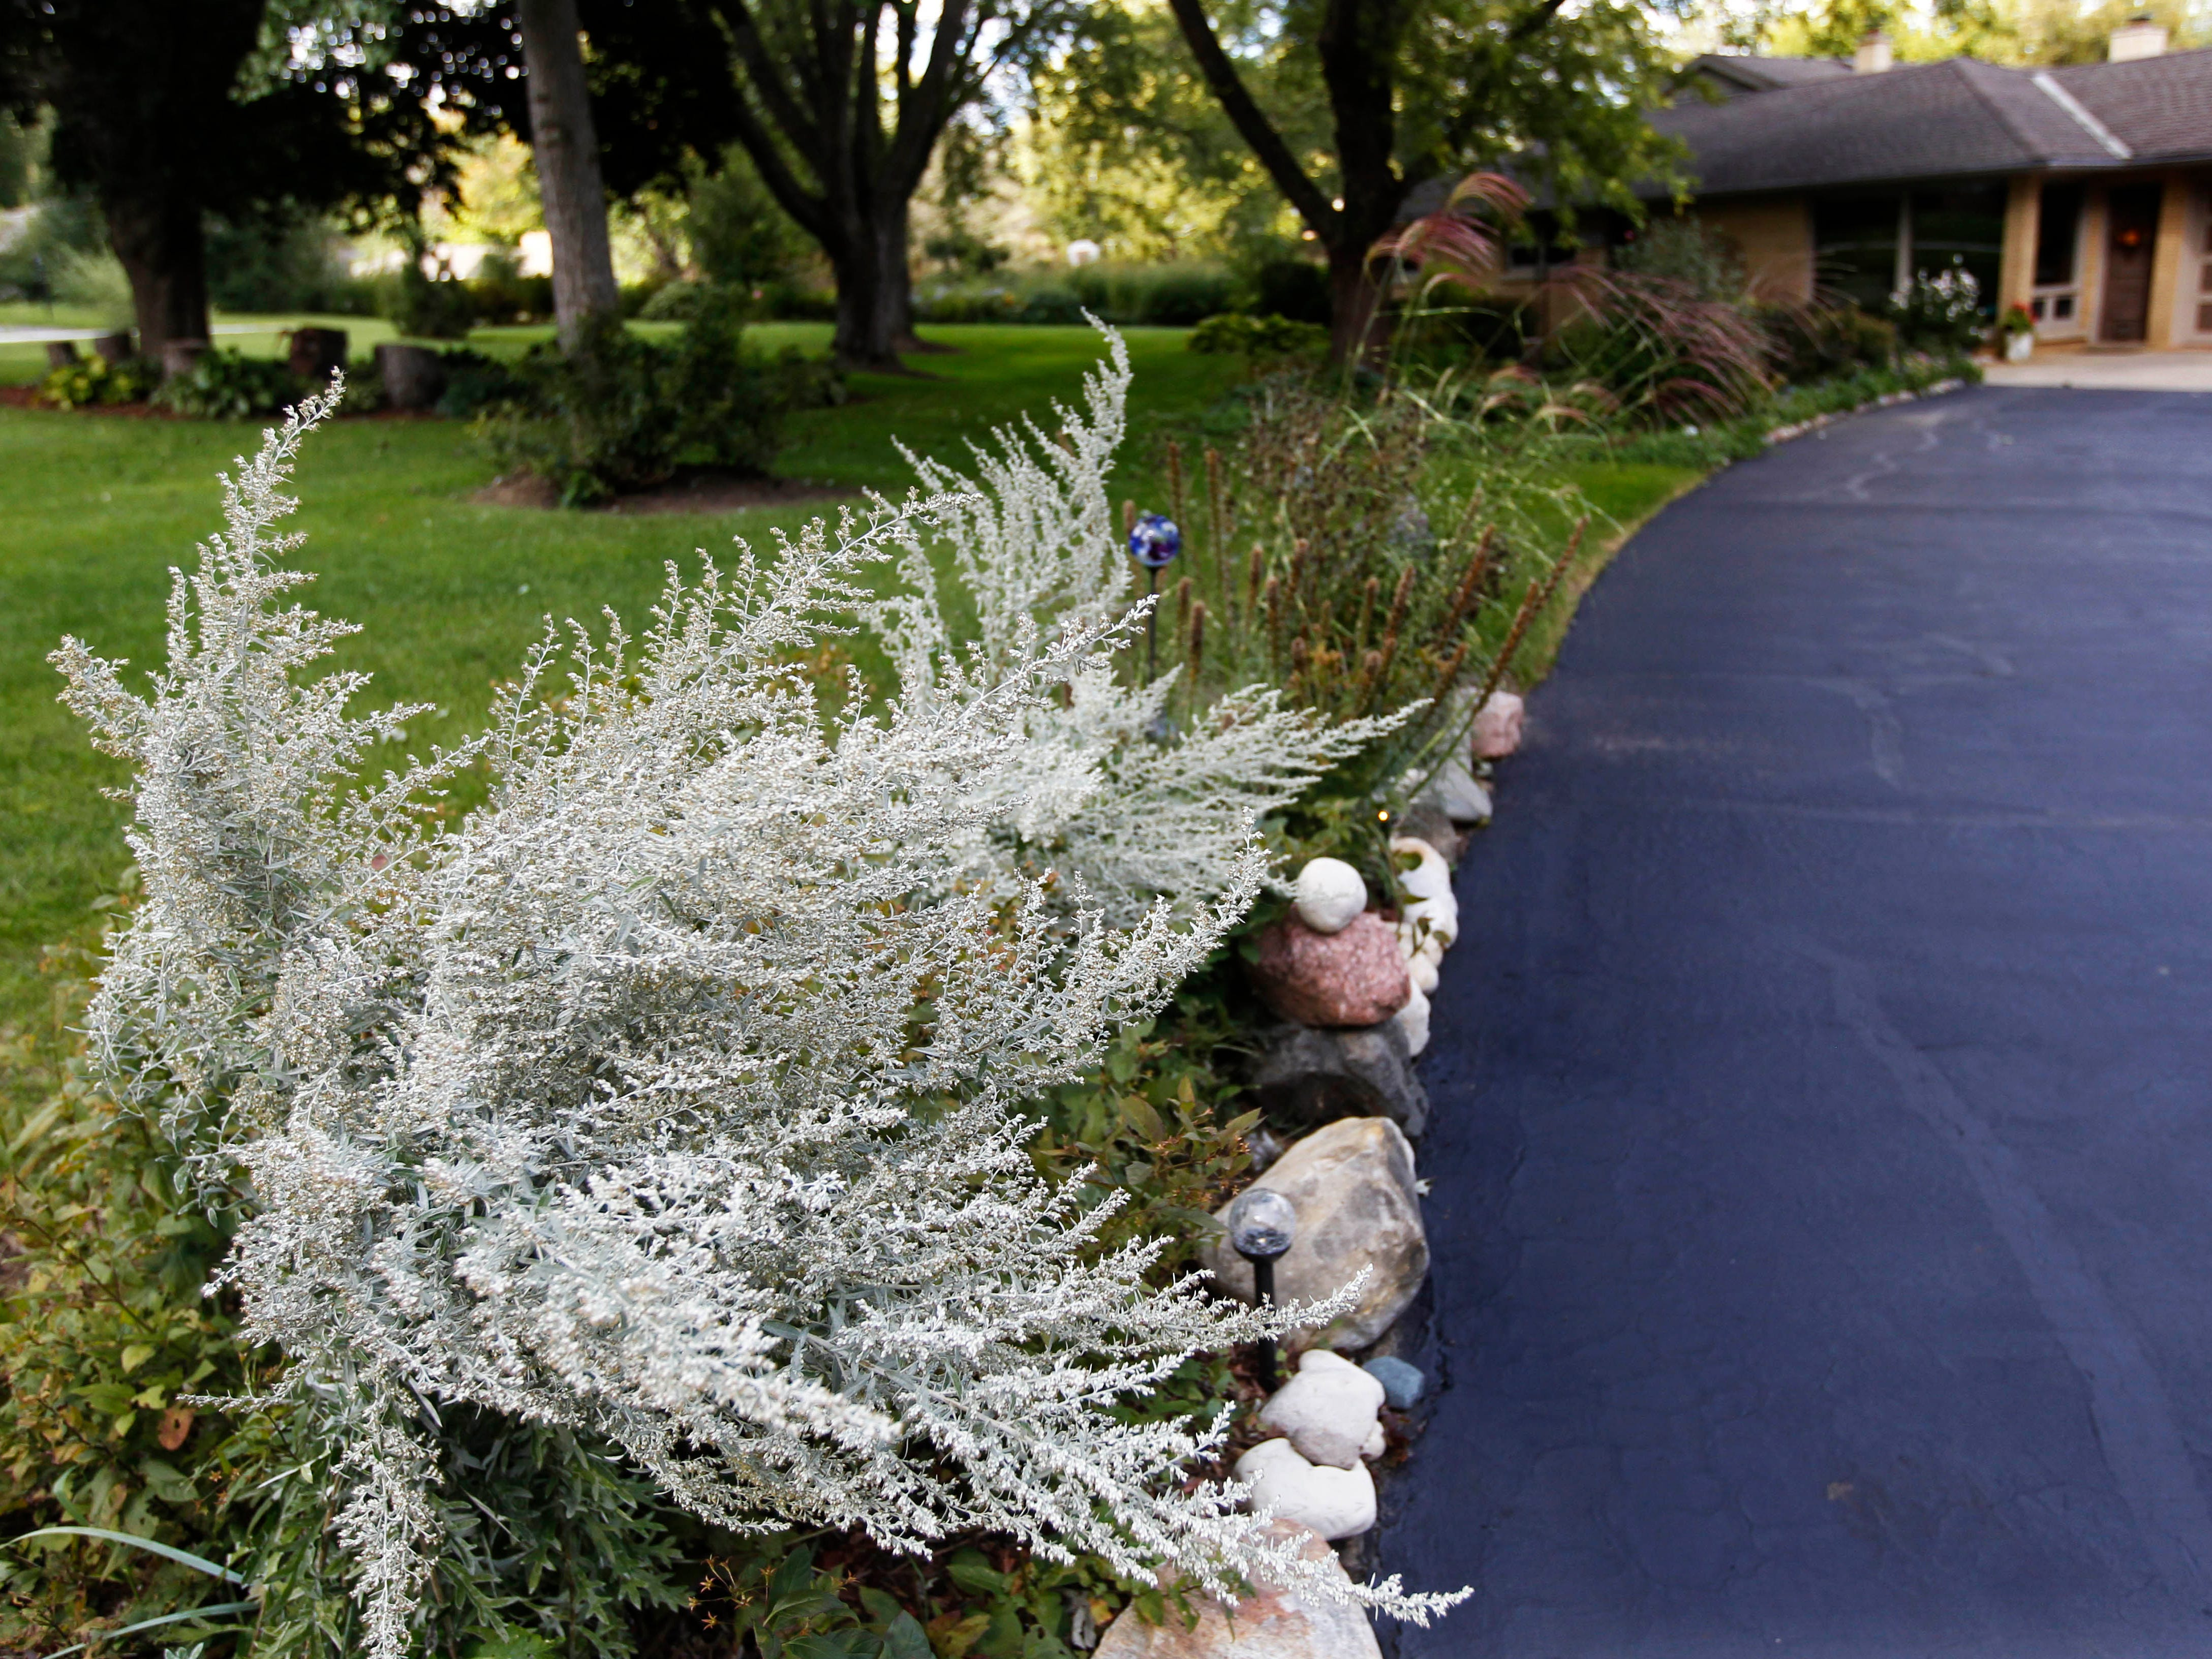 This Artemesia plant is among the many varieties that line  the driveway of the Brookfield home.